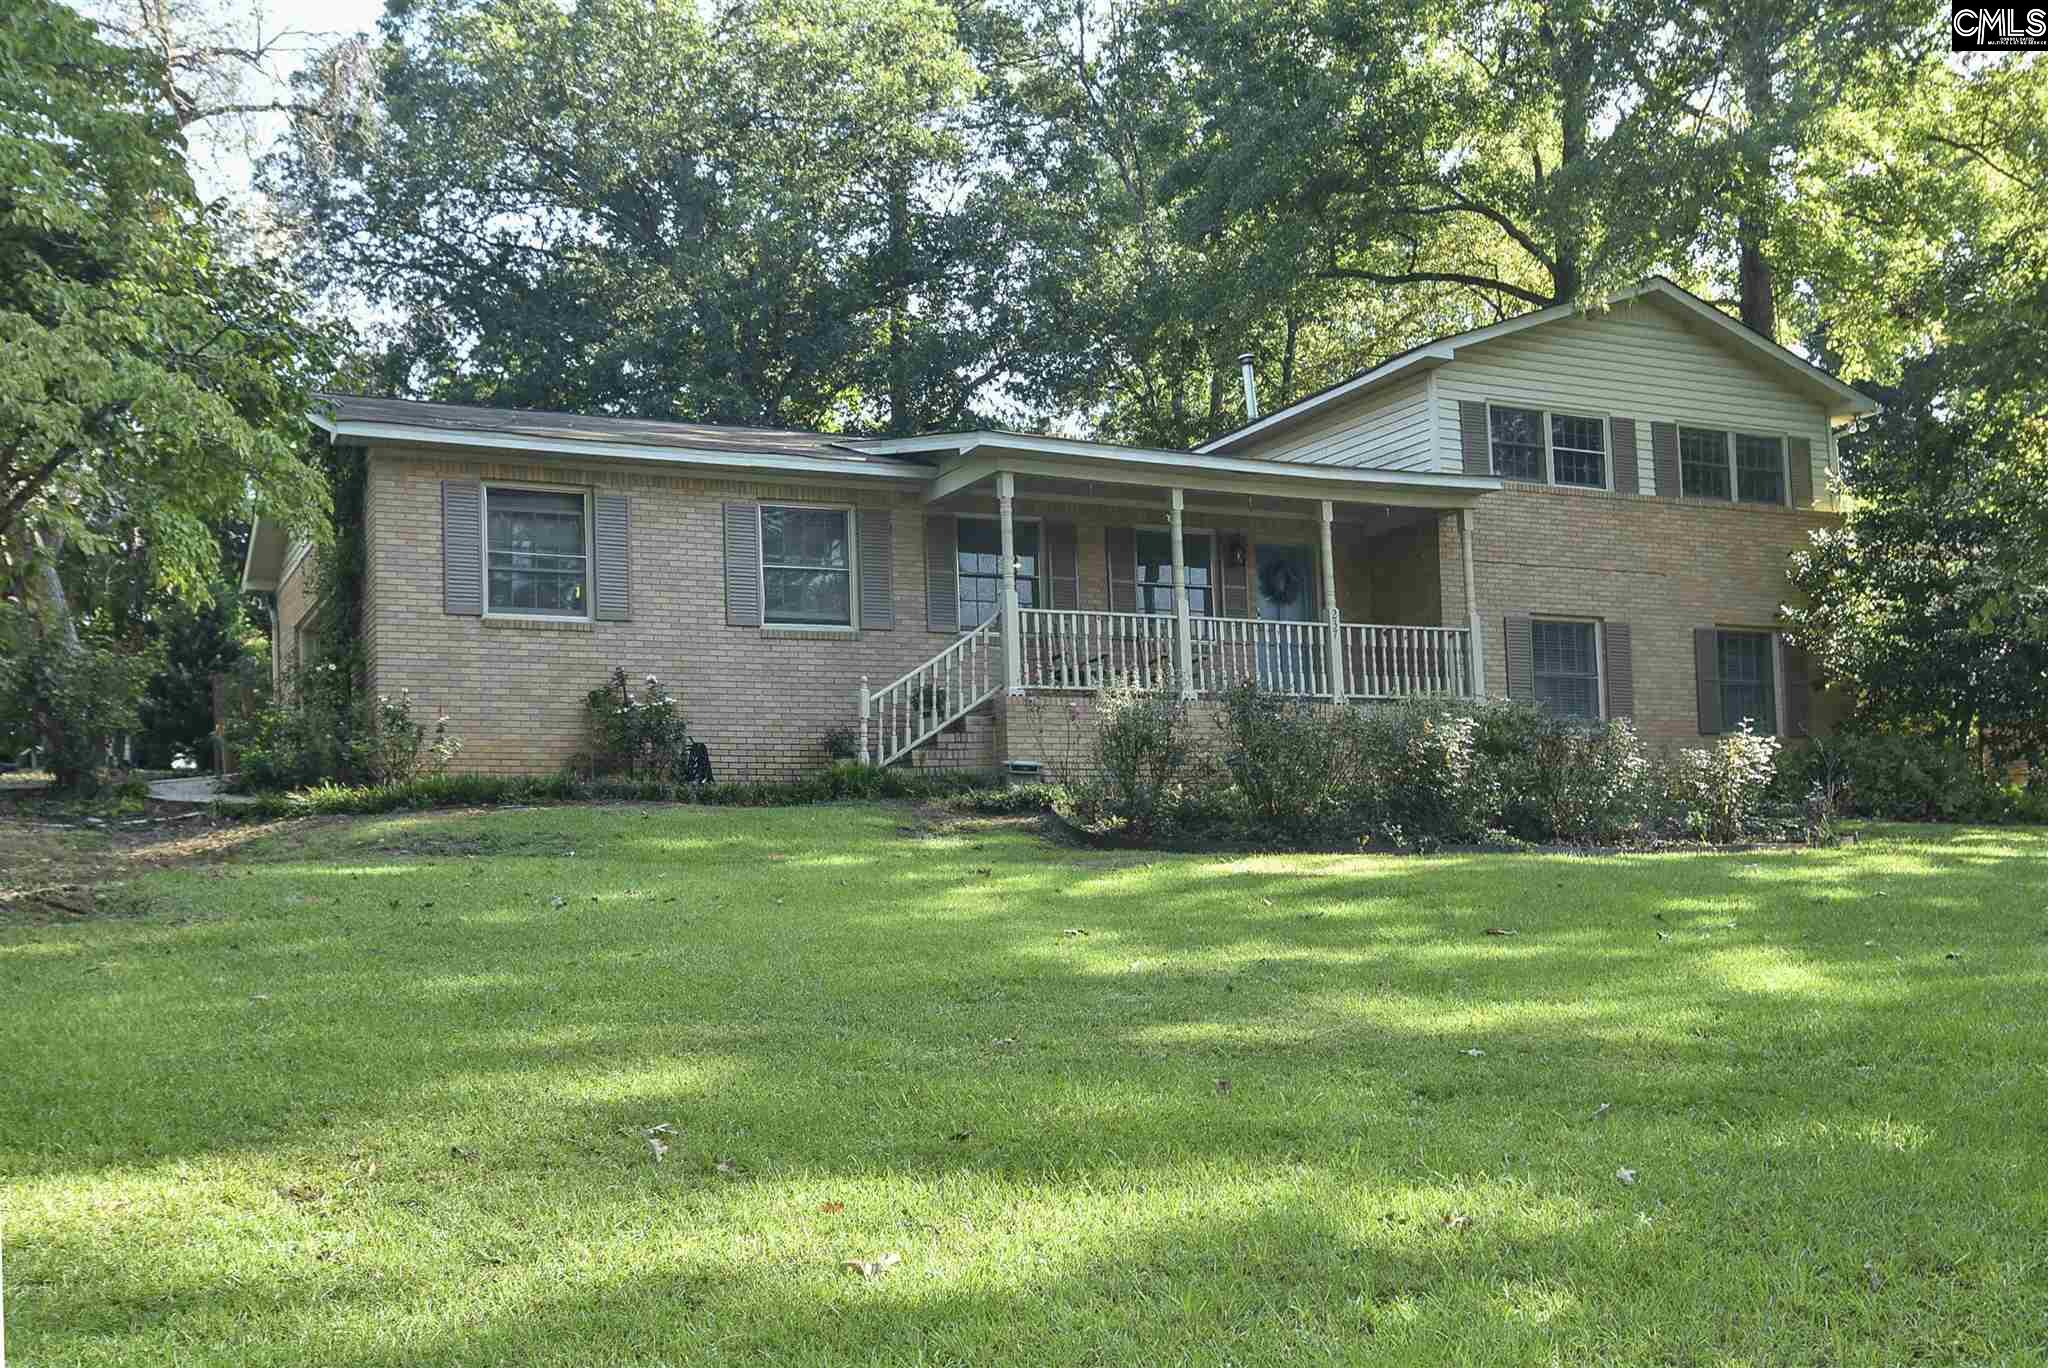 237 Middlesex Columbia, SC 29210-4446